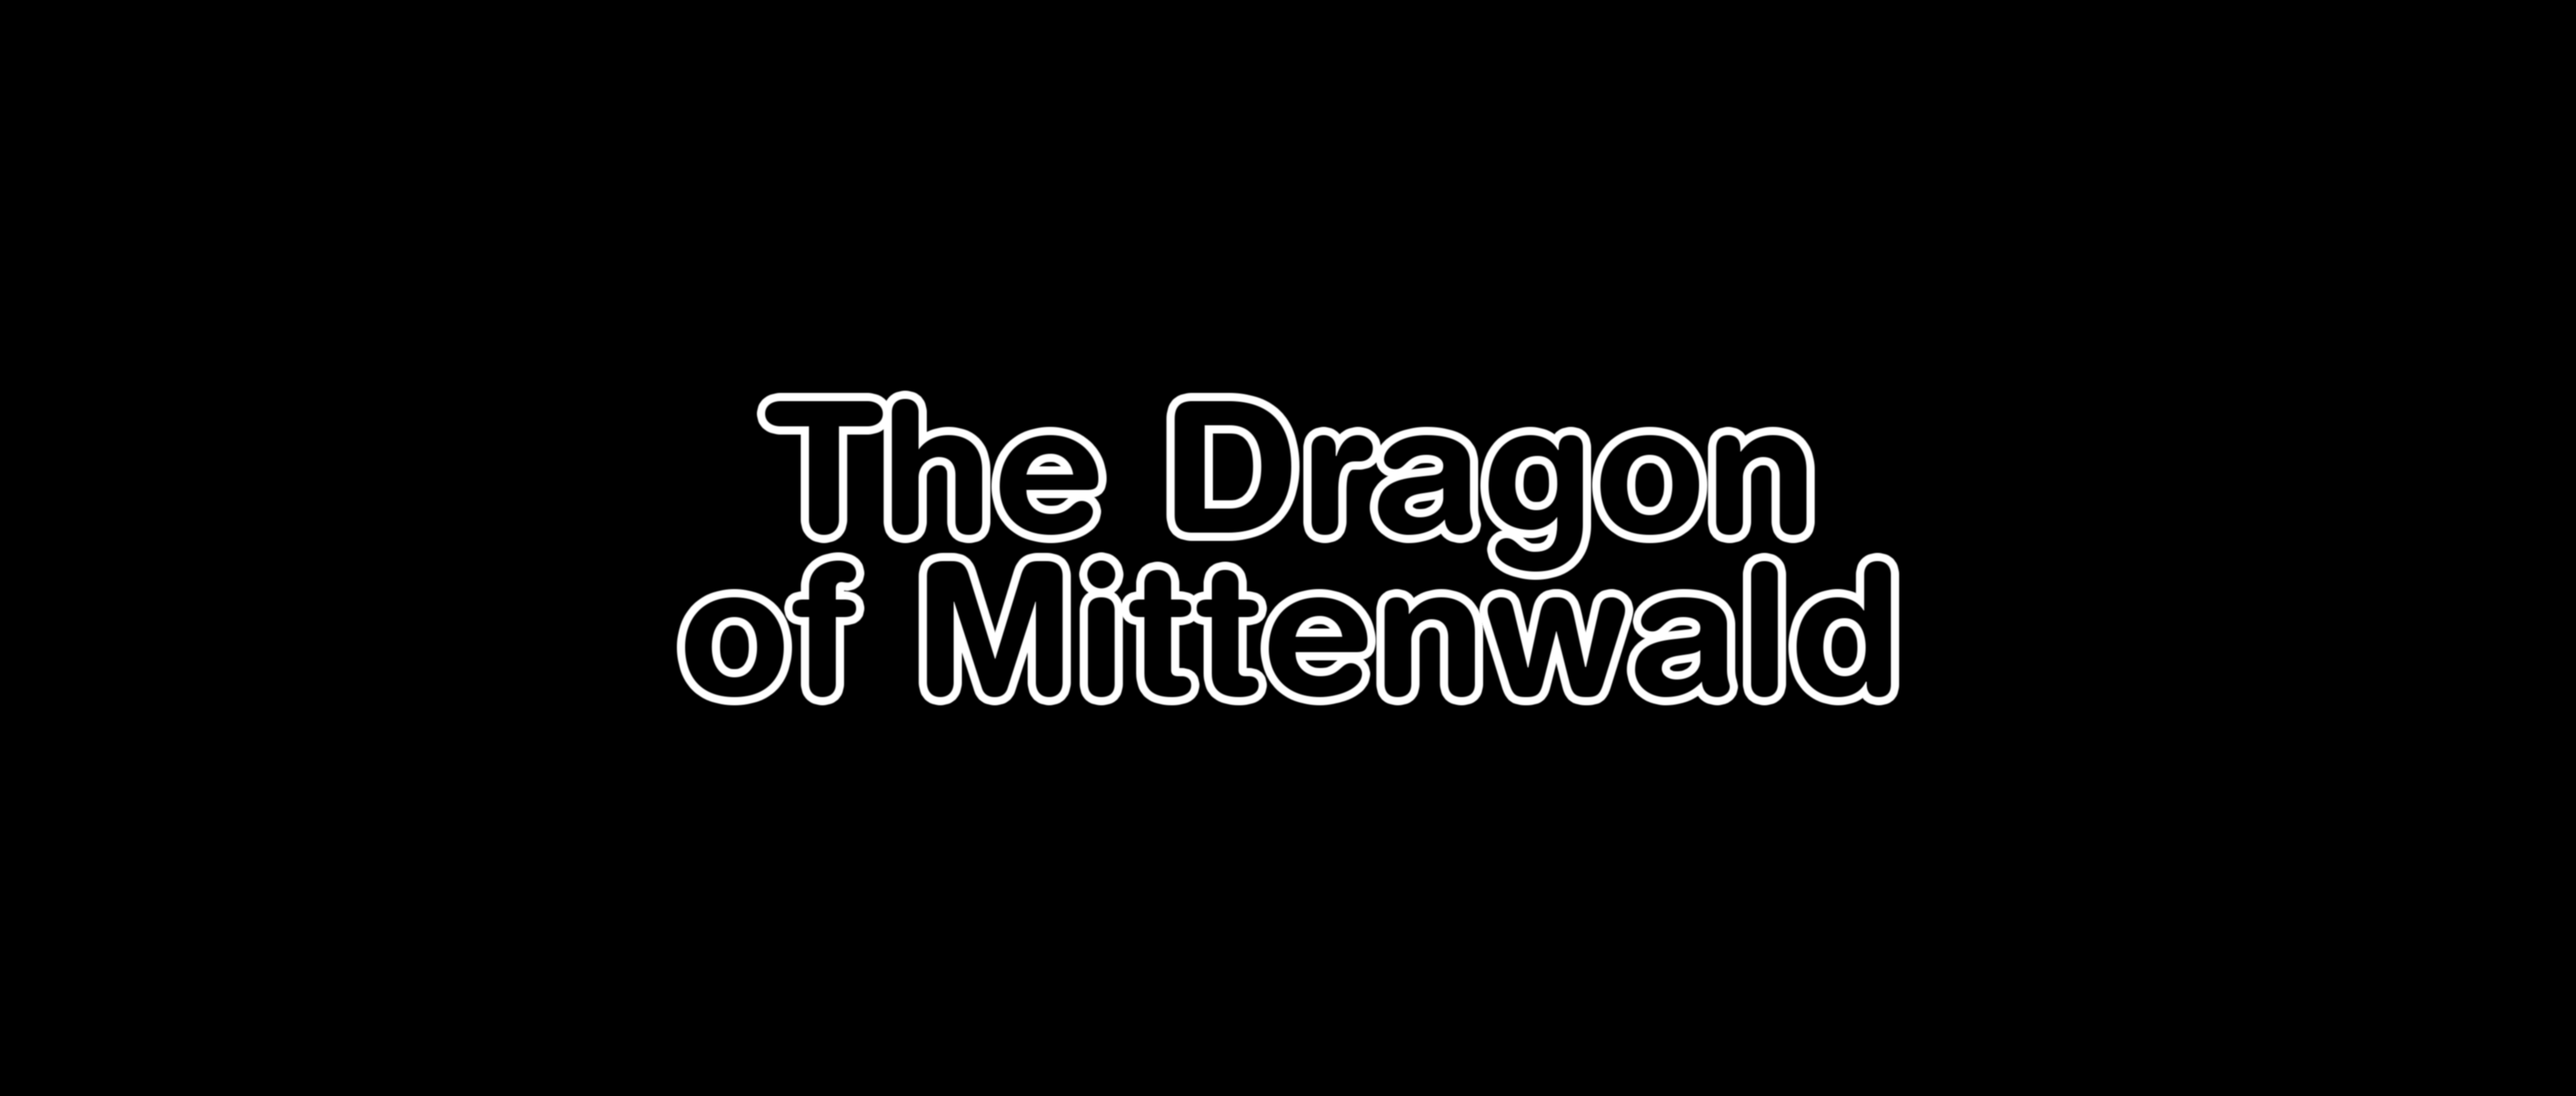 dragon-of-mittenwald.png